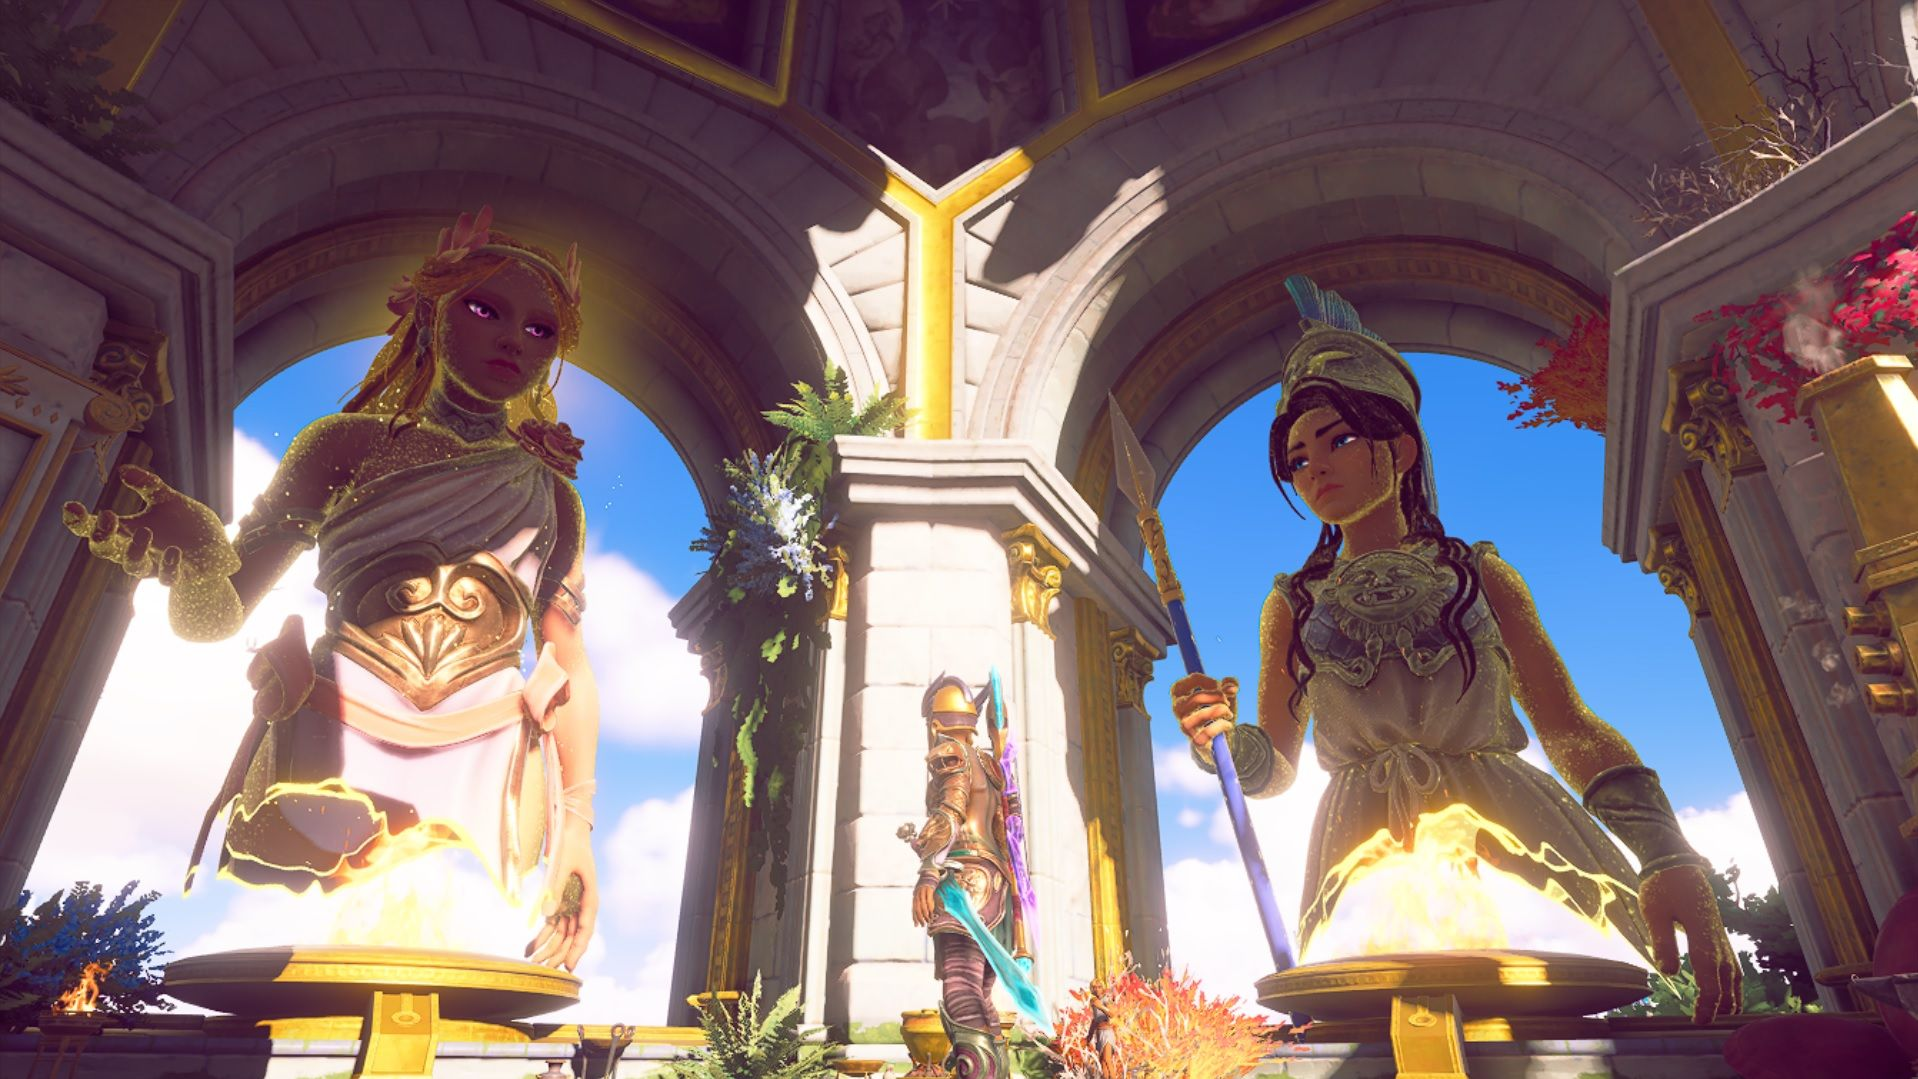 Fenyx stands looking up at Athena and Aphrodite, who are looking at each other in a kind of 'get a load of this guy' way.